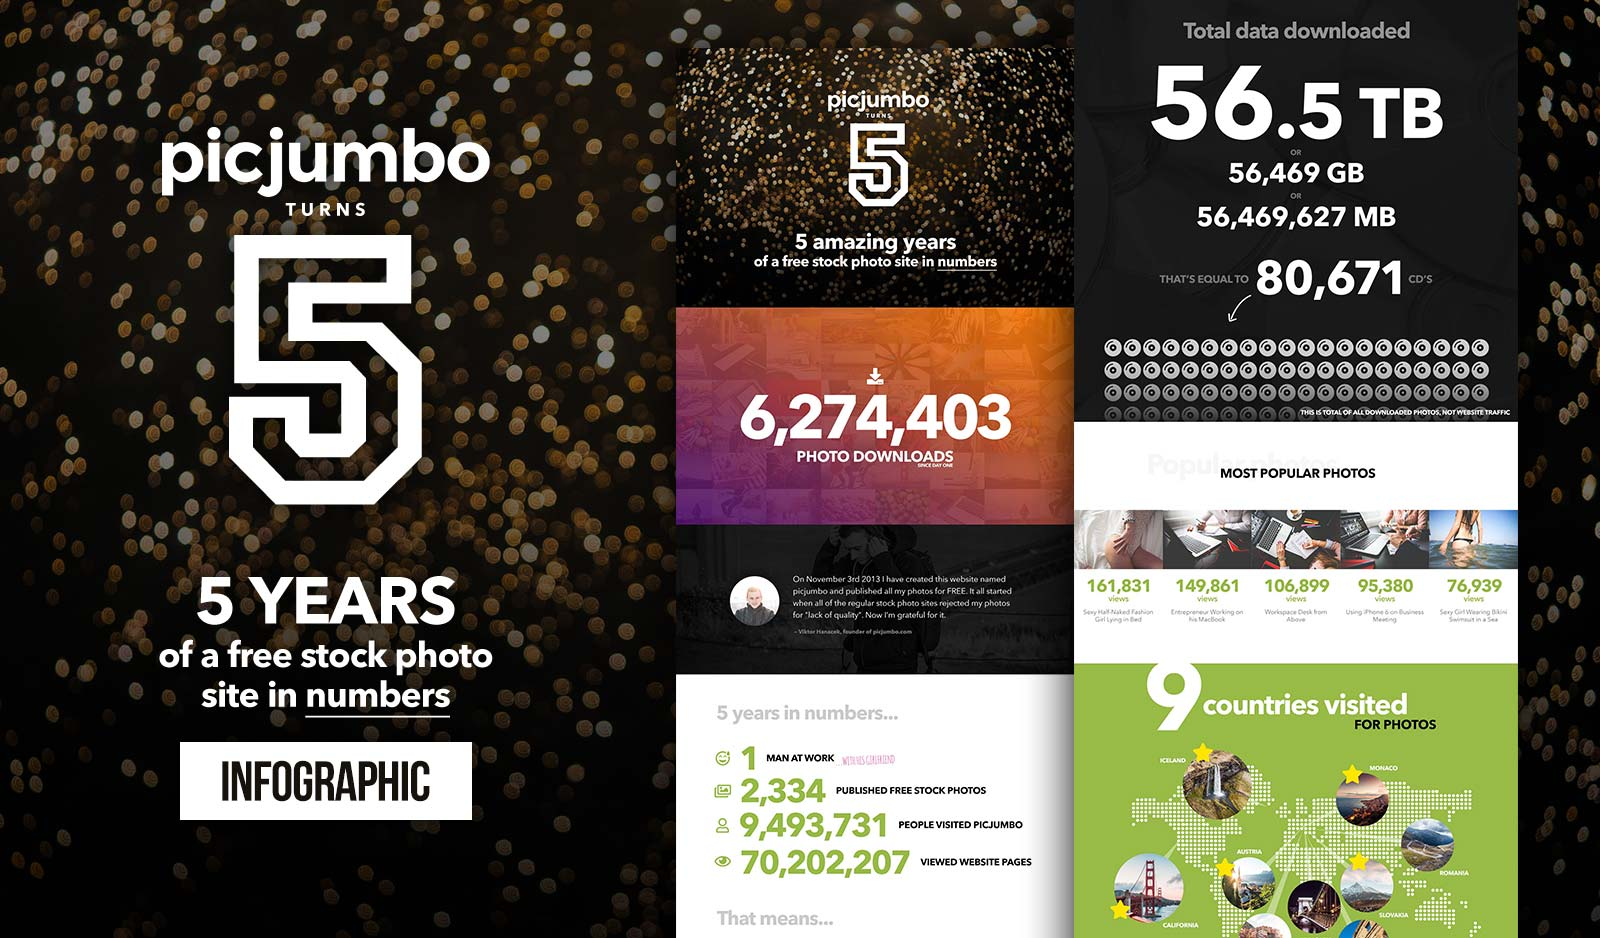 picjumbo BLOG: Infographic: 5 Amazing Years of picjumbo in Numbers